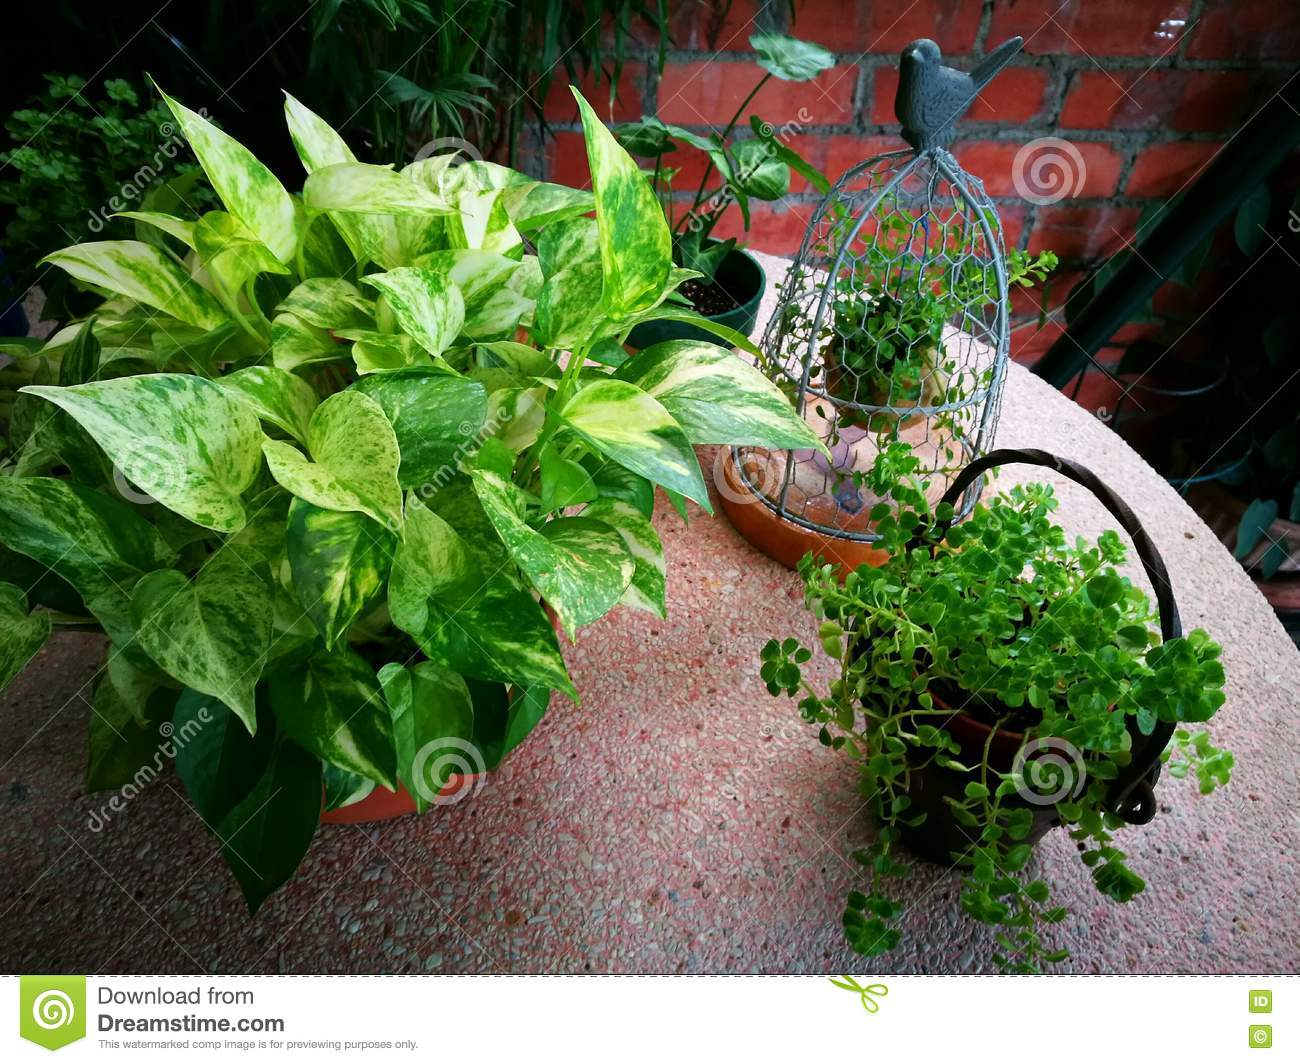 Garden Decor Items With Green Plants